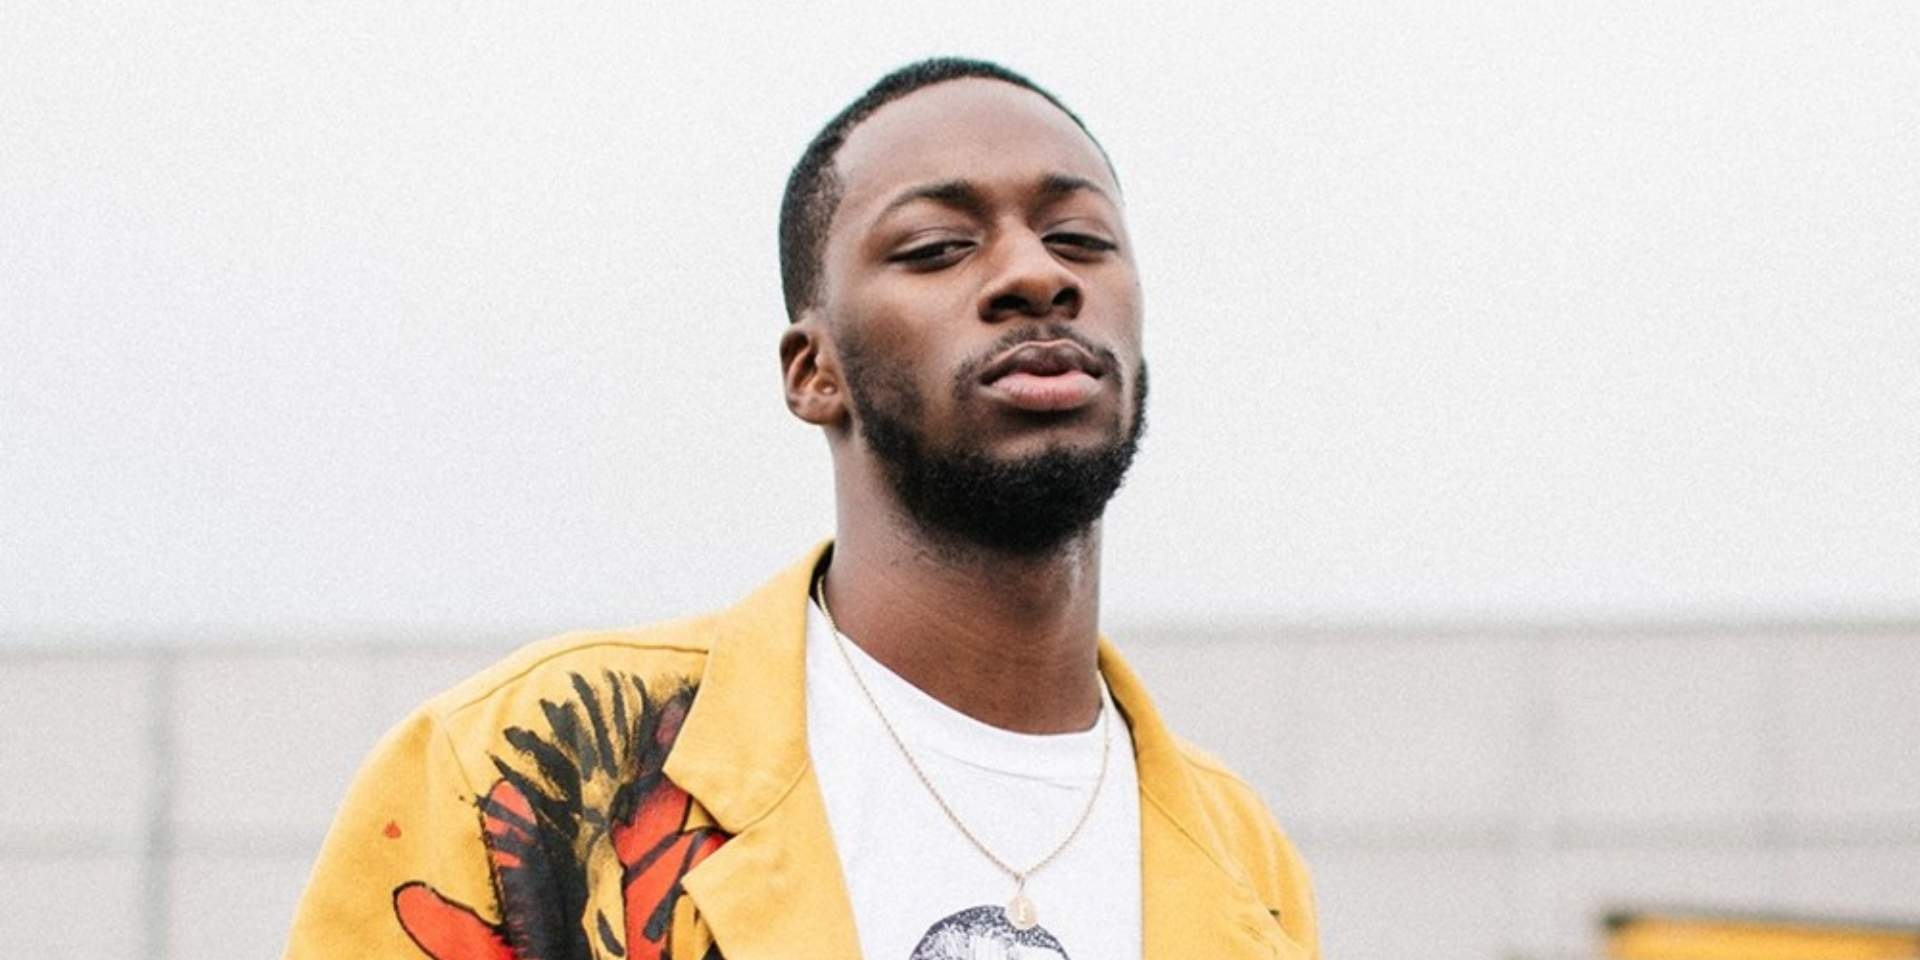 GoldLink's new album Diaspora is out now – listen